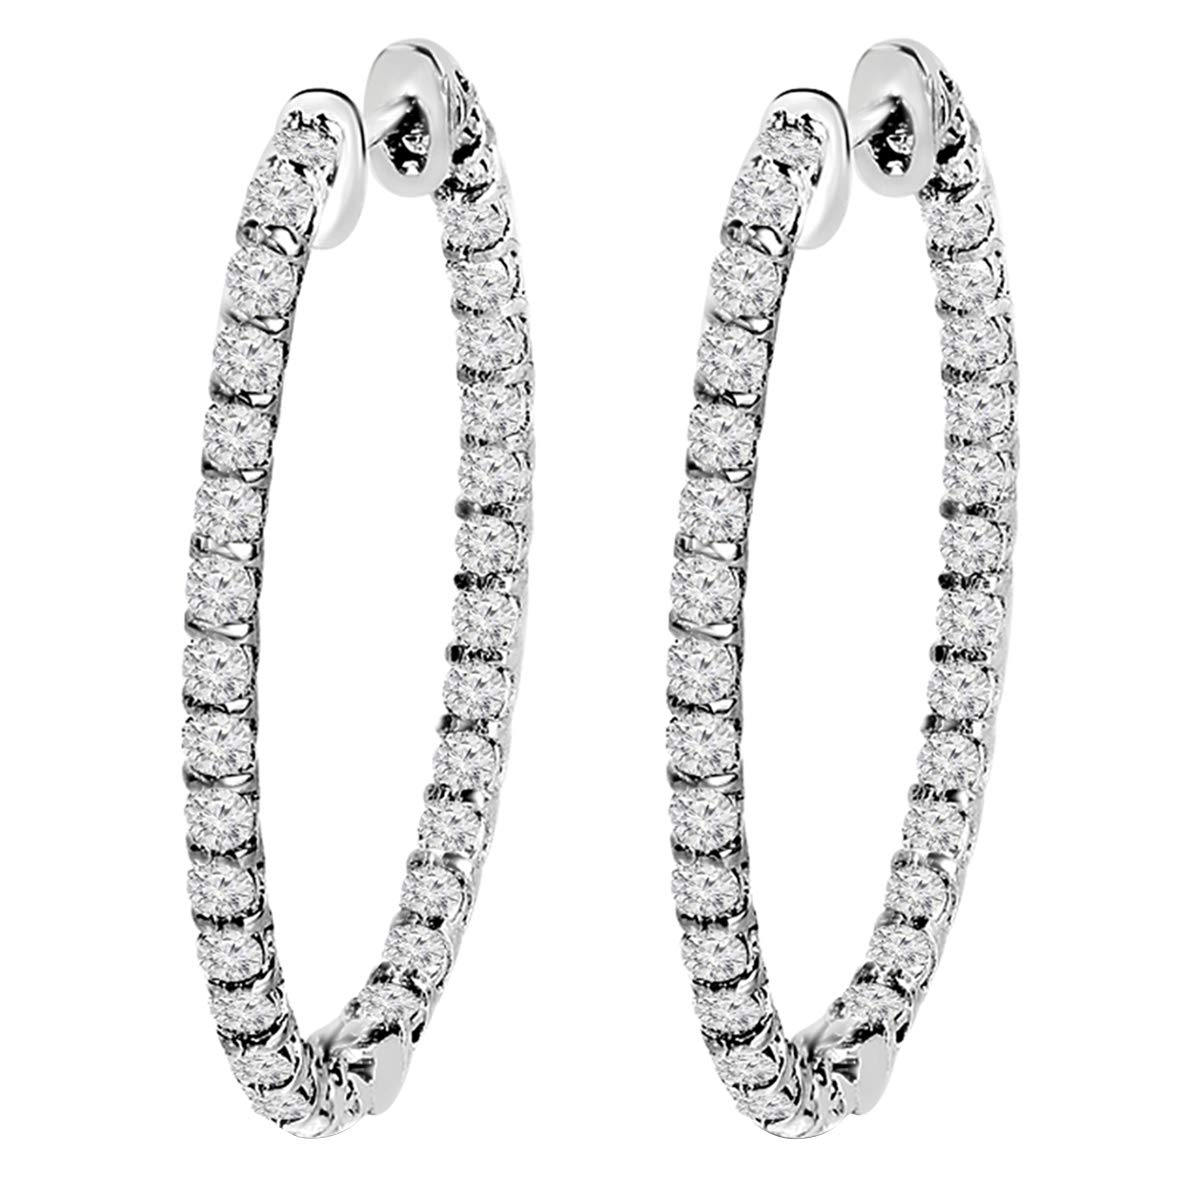 14K White Gold 1.00 Ct Round Cut Simulated Diamond Inside Out Hoop Earrings